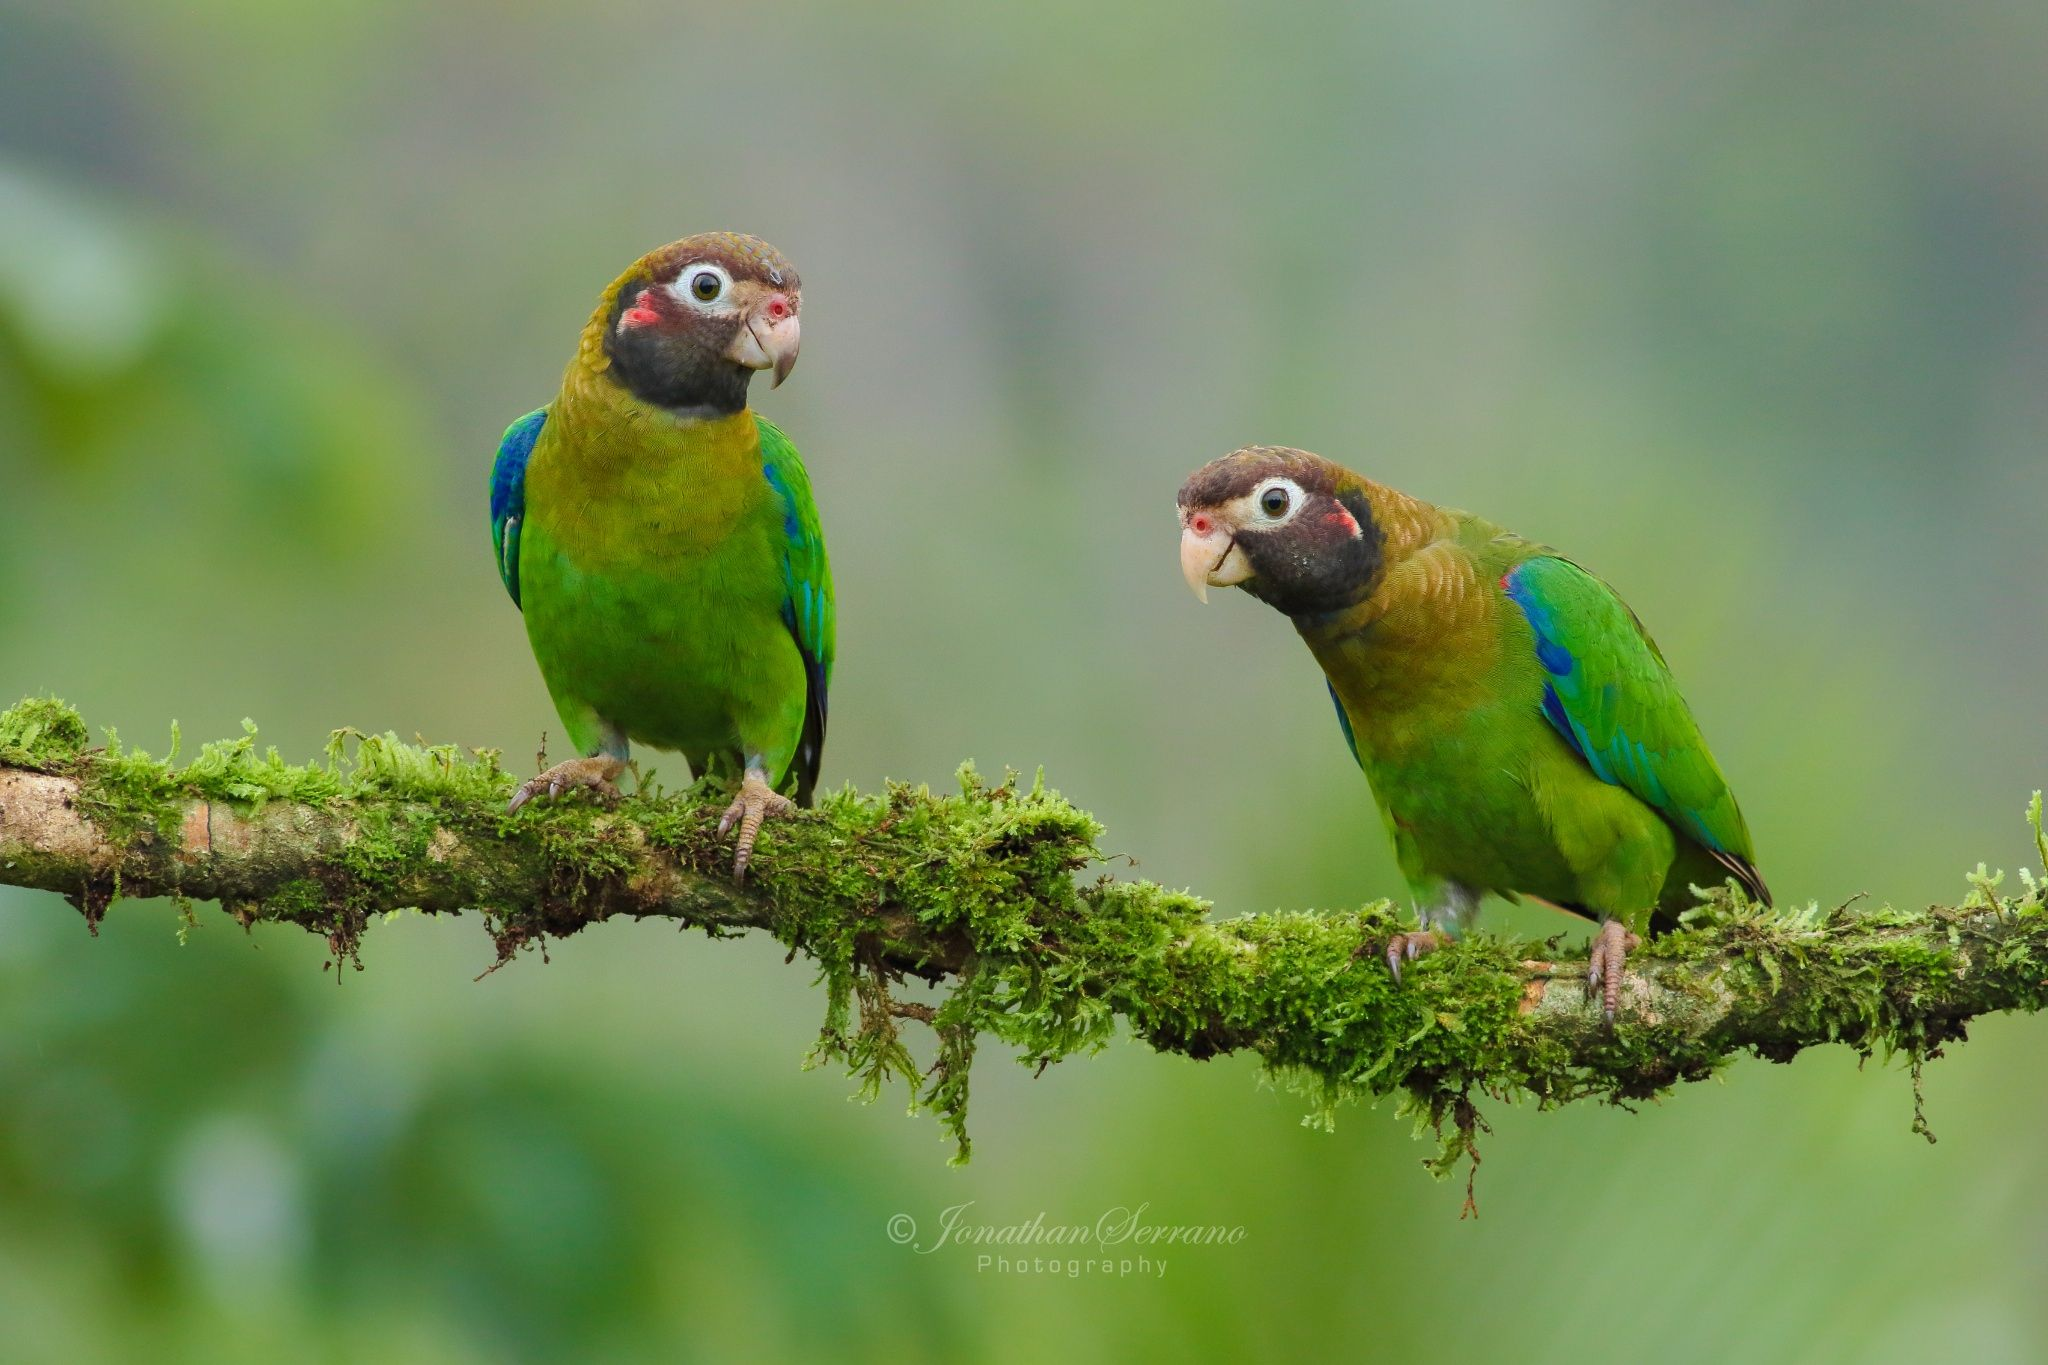 Brown-hooded Parrot. by Jonathan Serrano on 500px